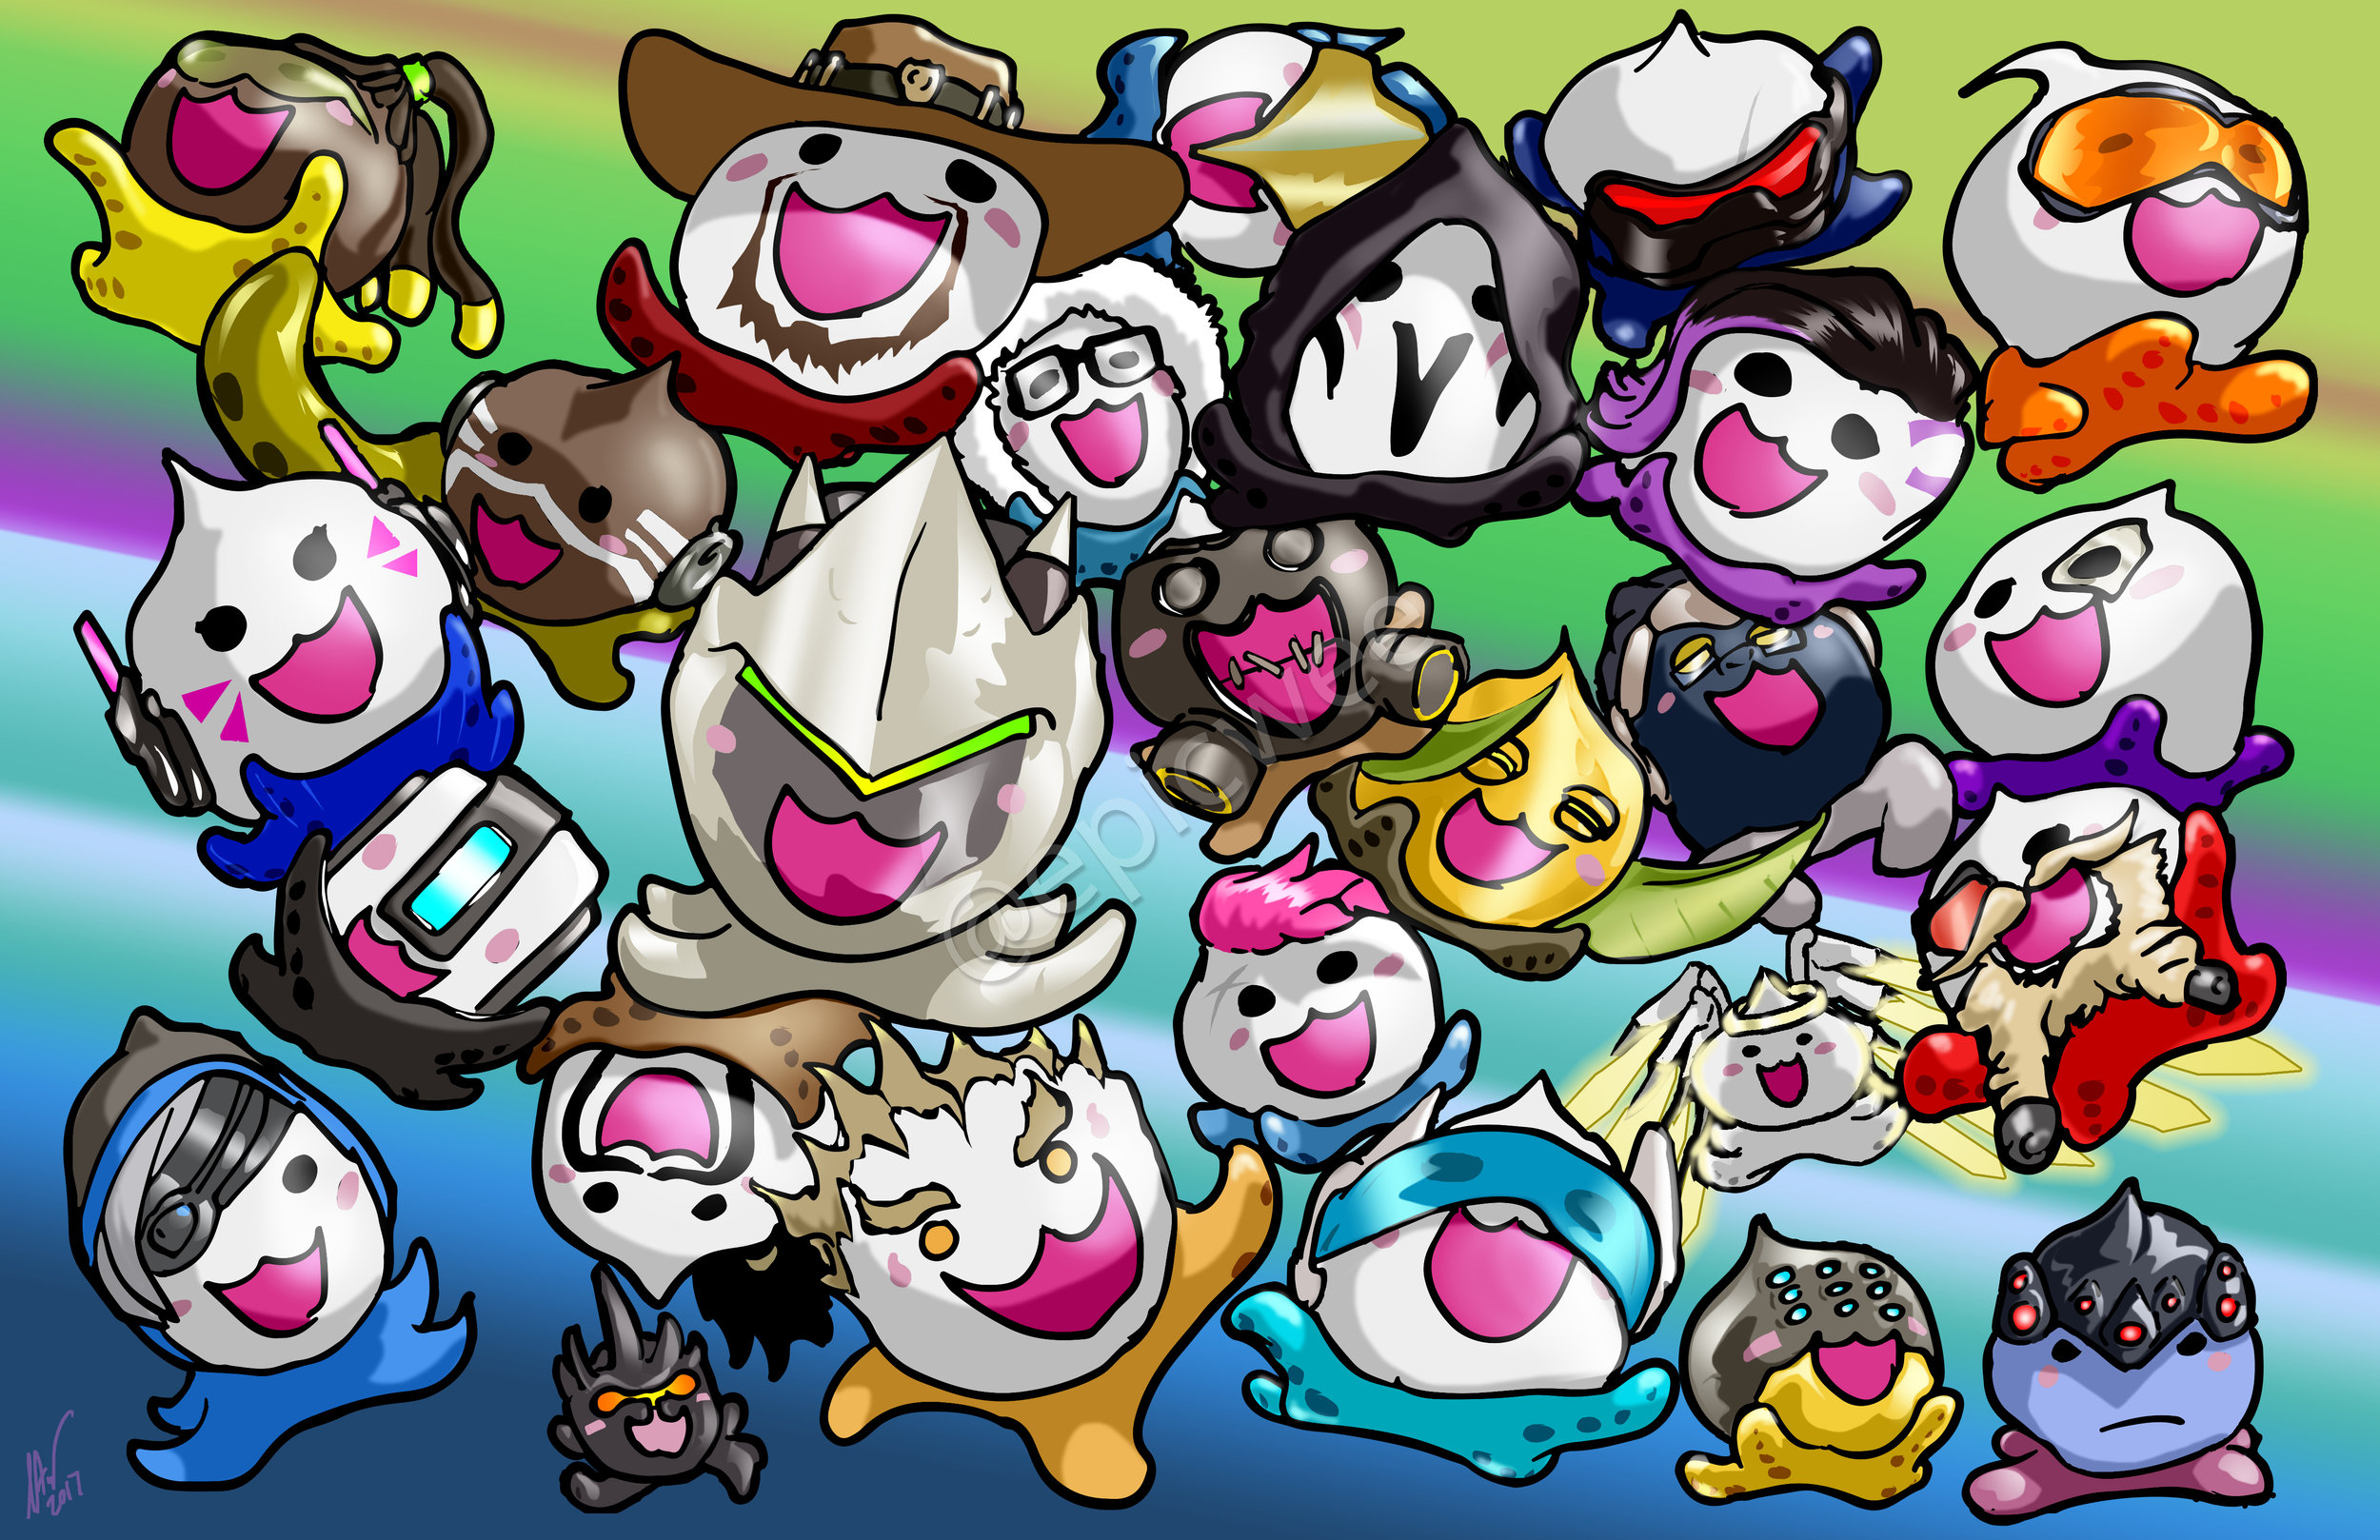 Overwatch - Pachimaris 11X17 copy.jpg